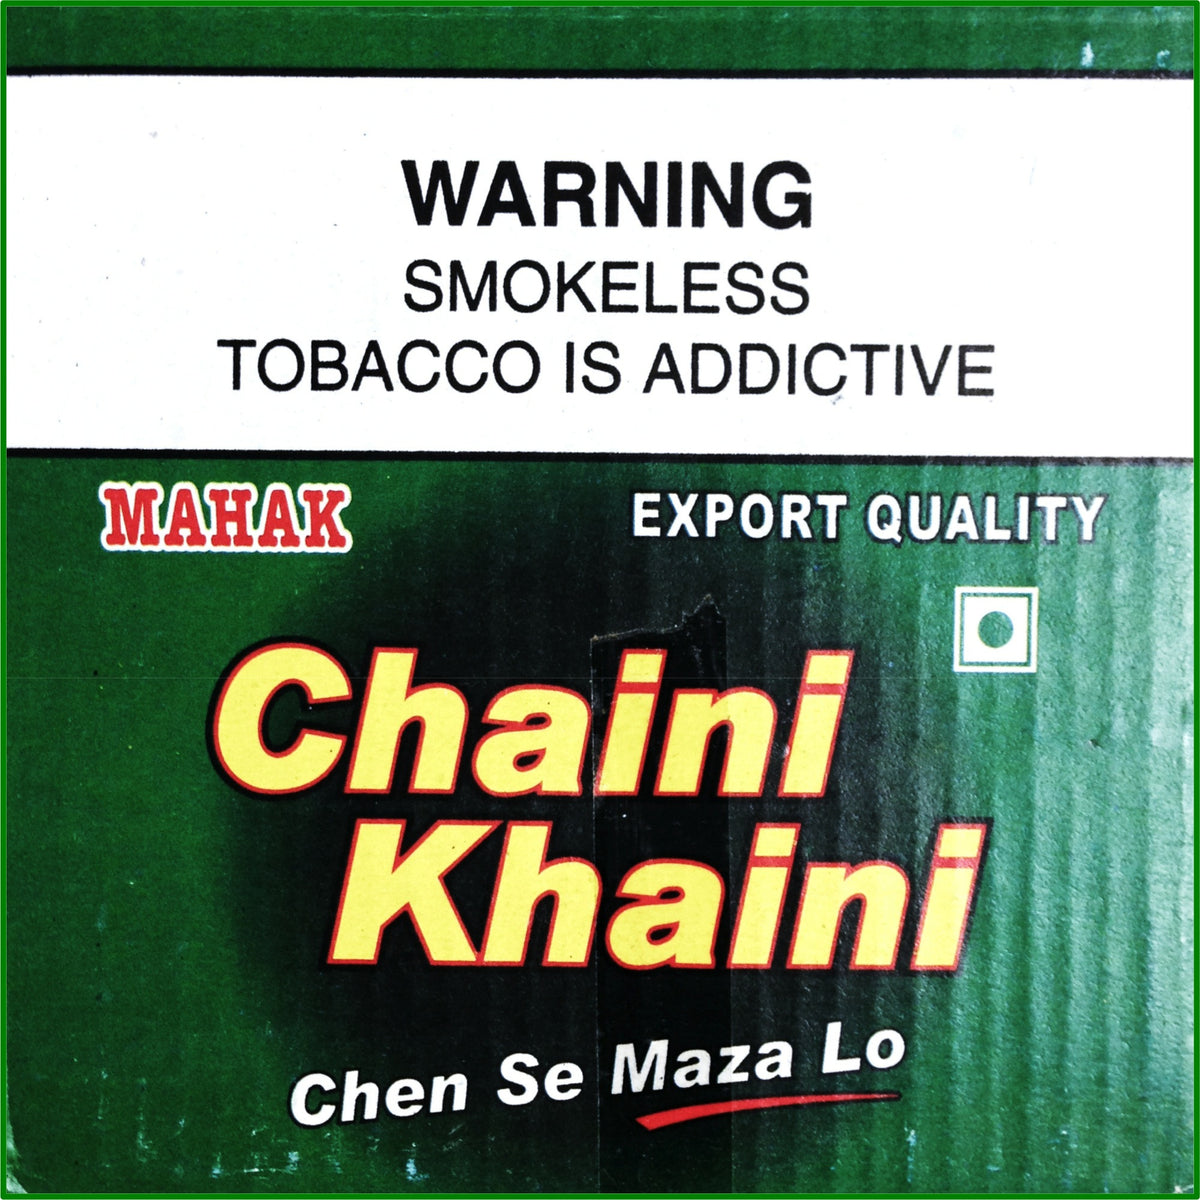 100 Boxes Chaini Khaini Best Indian Tobacco 20 x 4.5 g Each